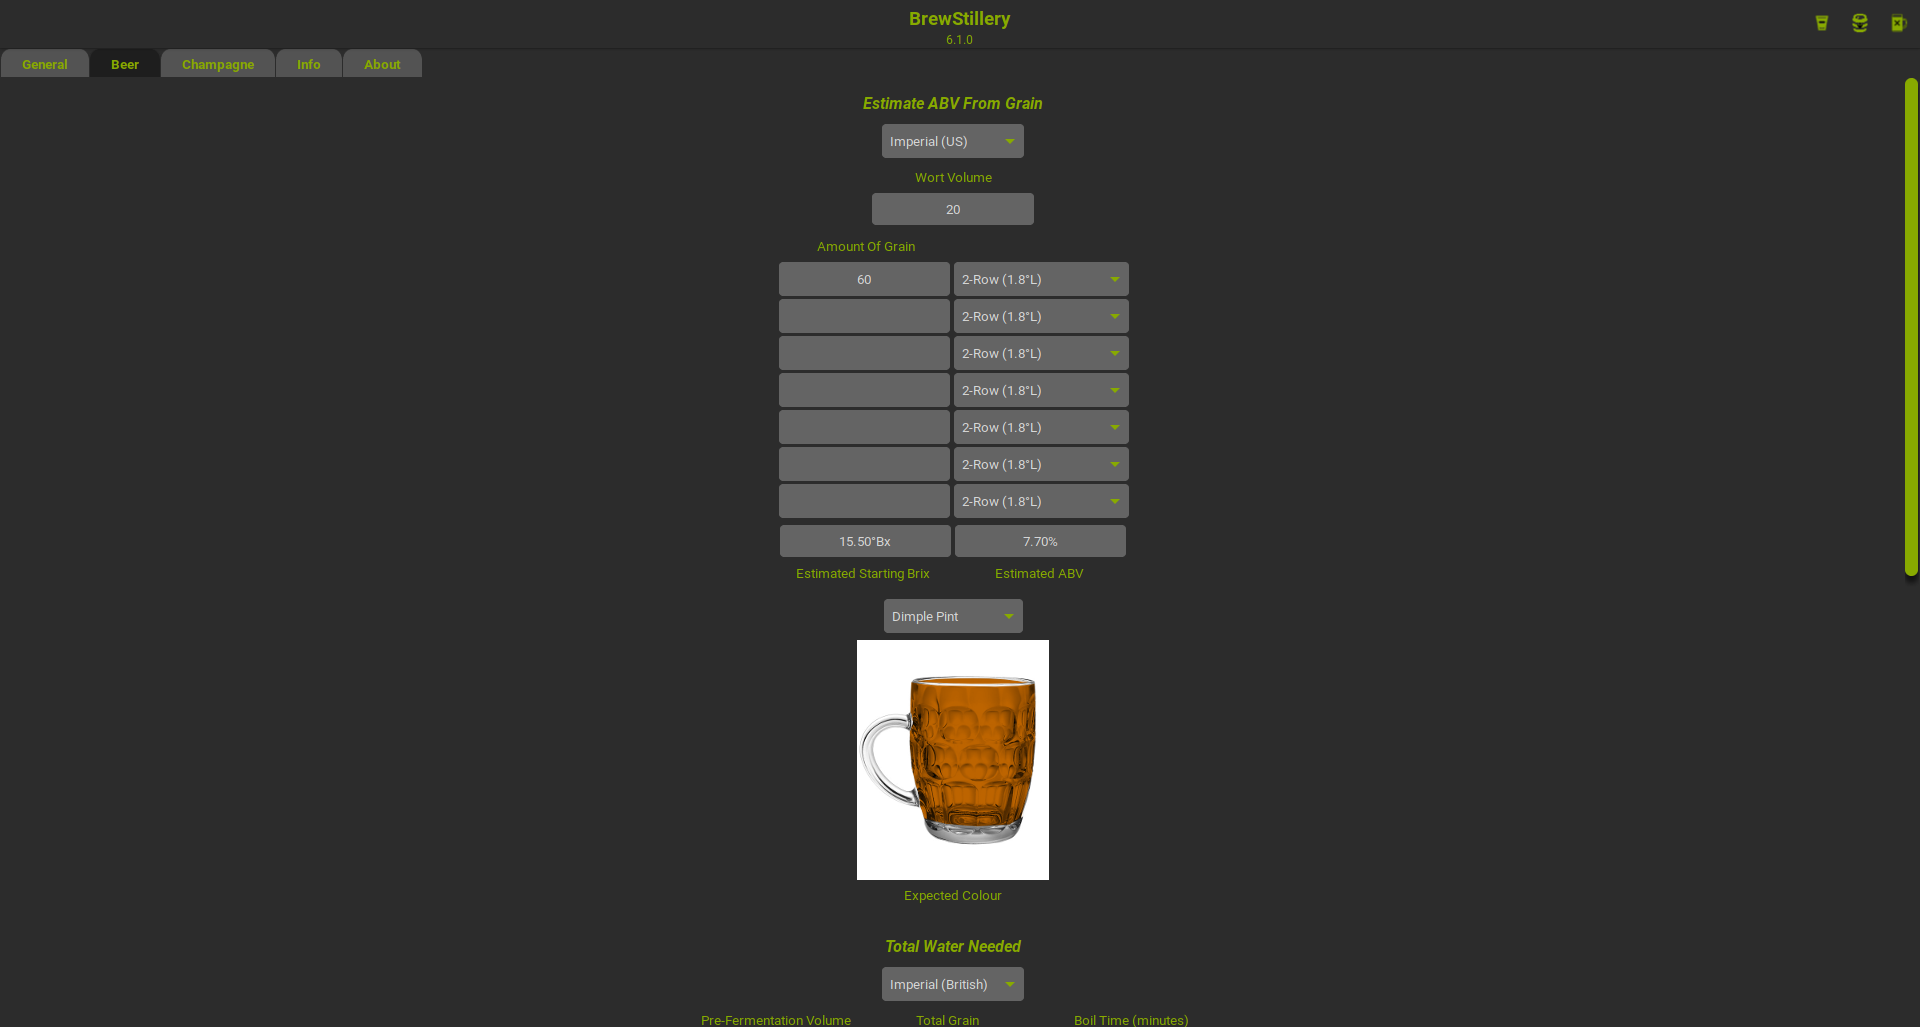 media/screenshots/BrewStilleryBeerTabTopFilledIn.png